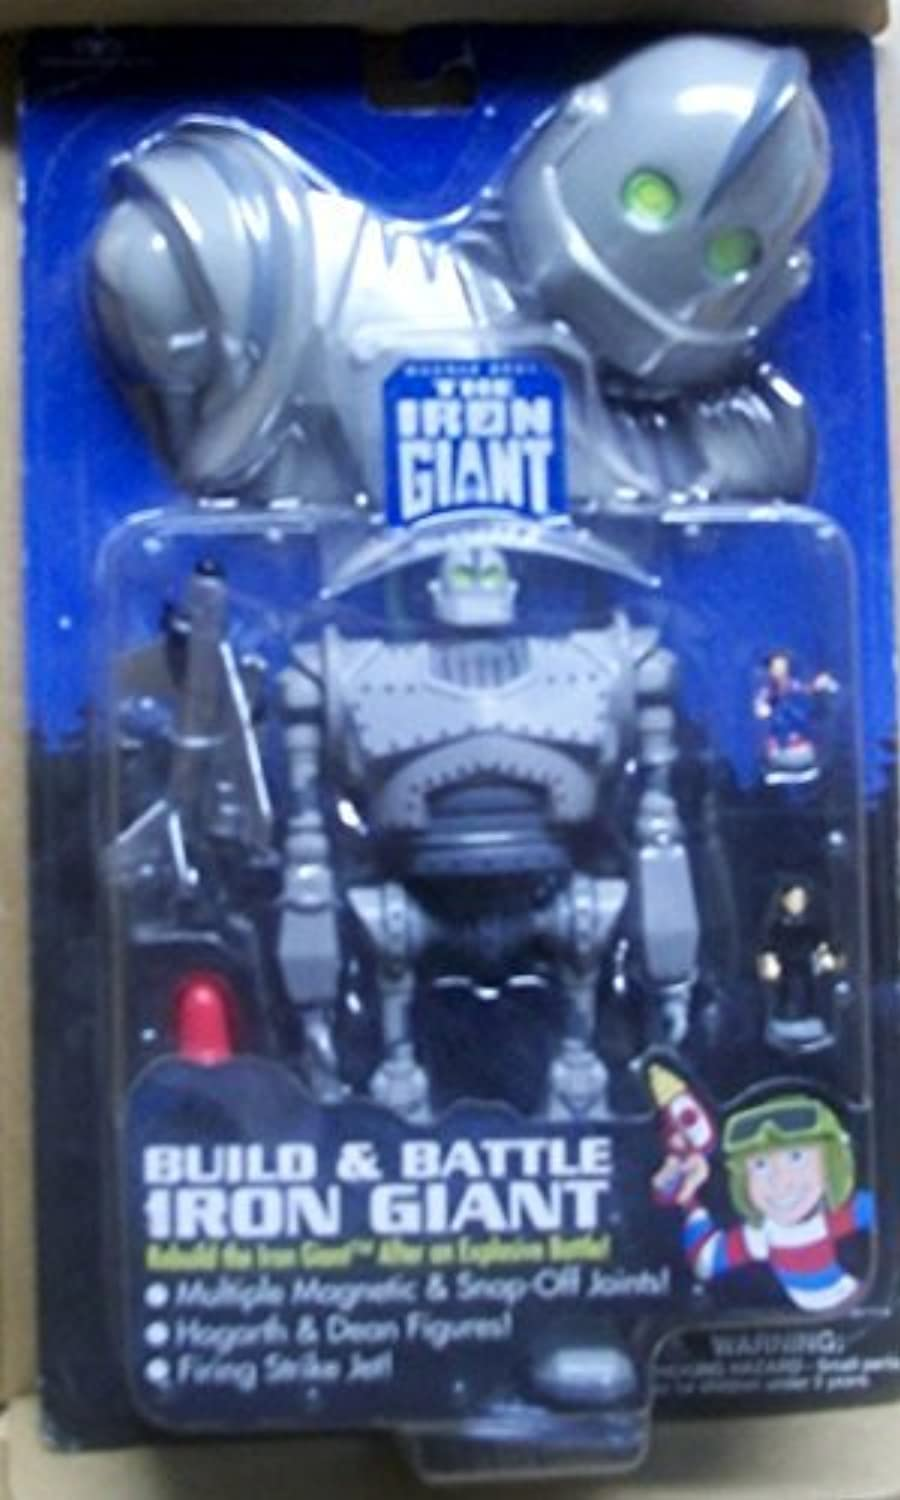 The Iron Giant 'Build and Battle Iron Giant' collectors action figure package